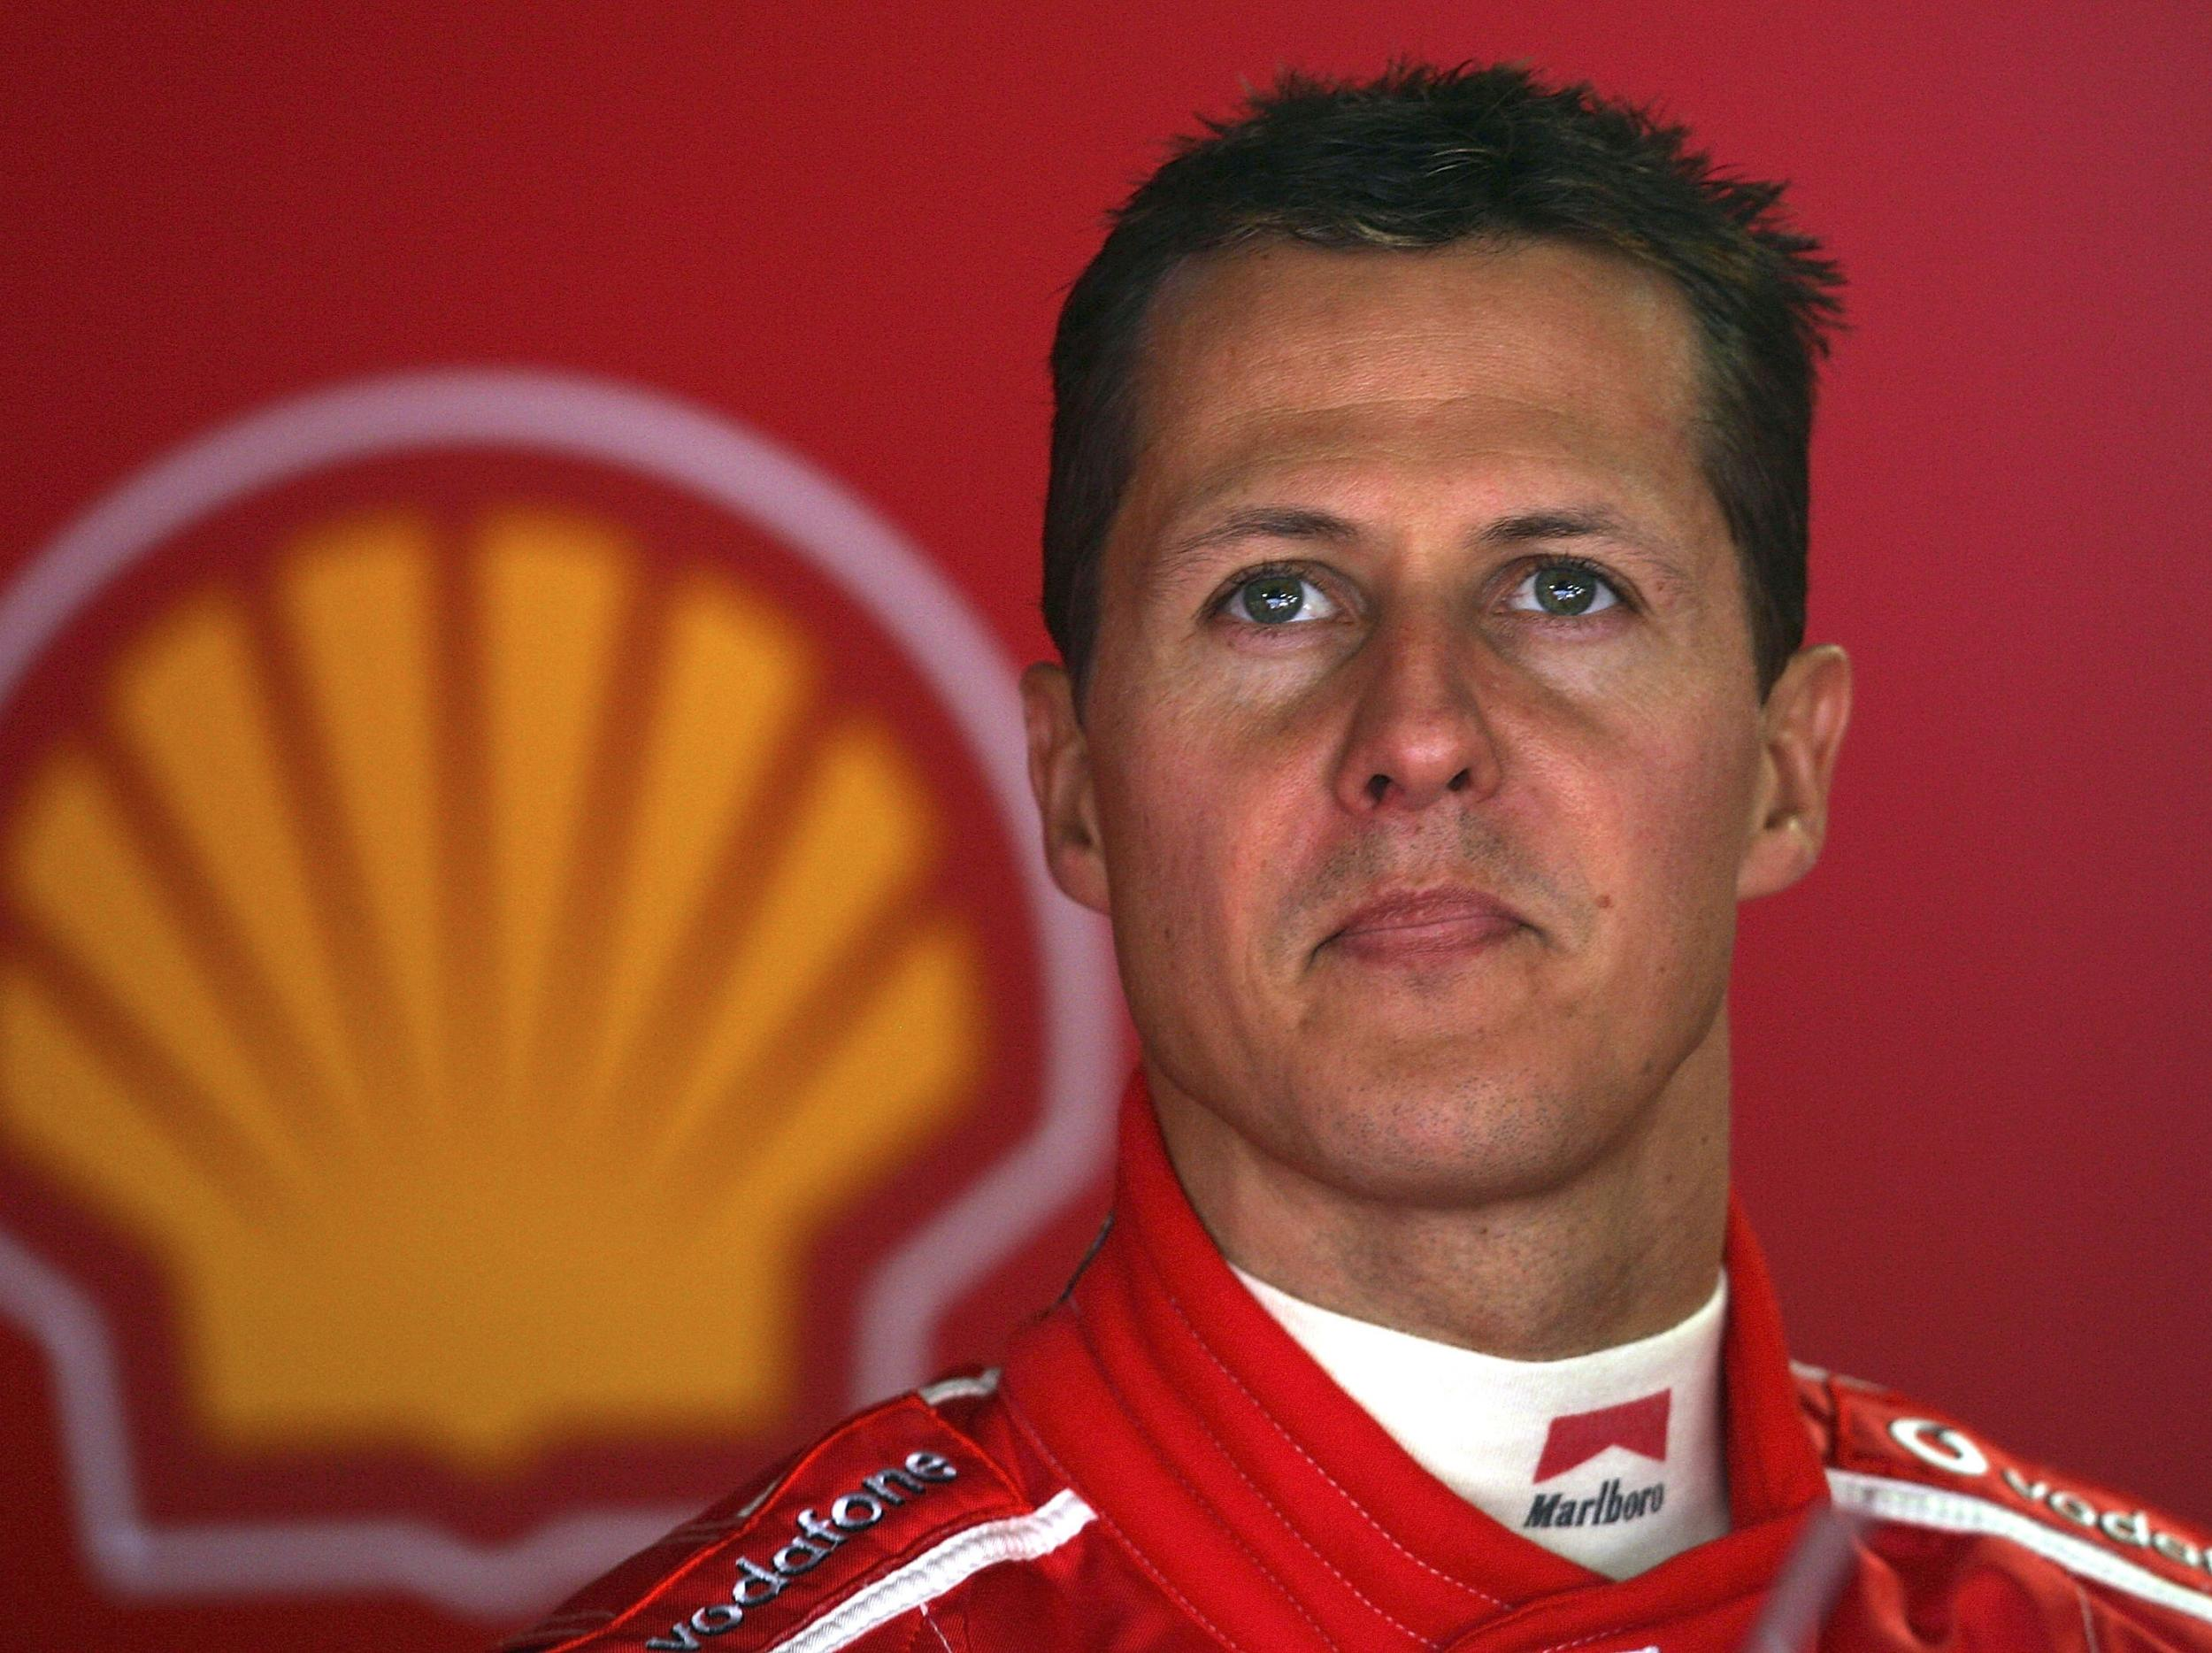 Michael Schumacher News F1 Driver S Health Altered And Deteriorated Says Neurosurgeon The Independent The Independent